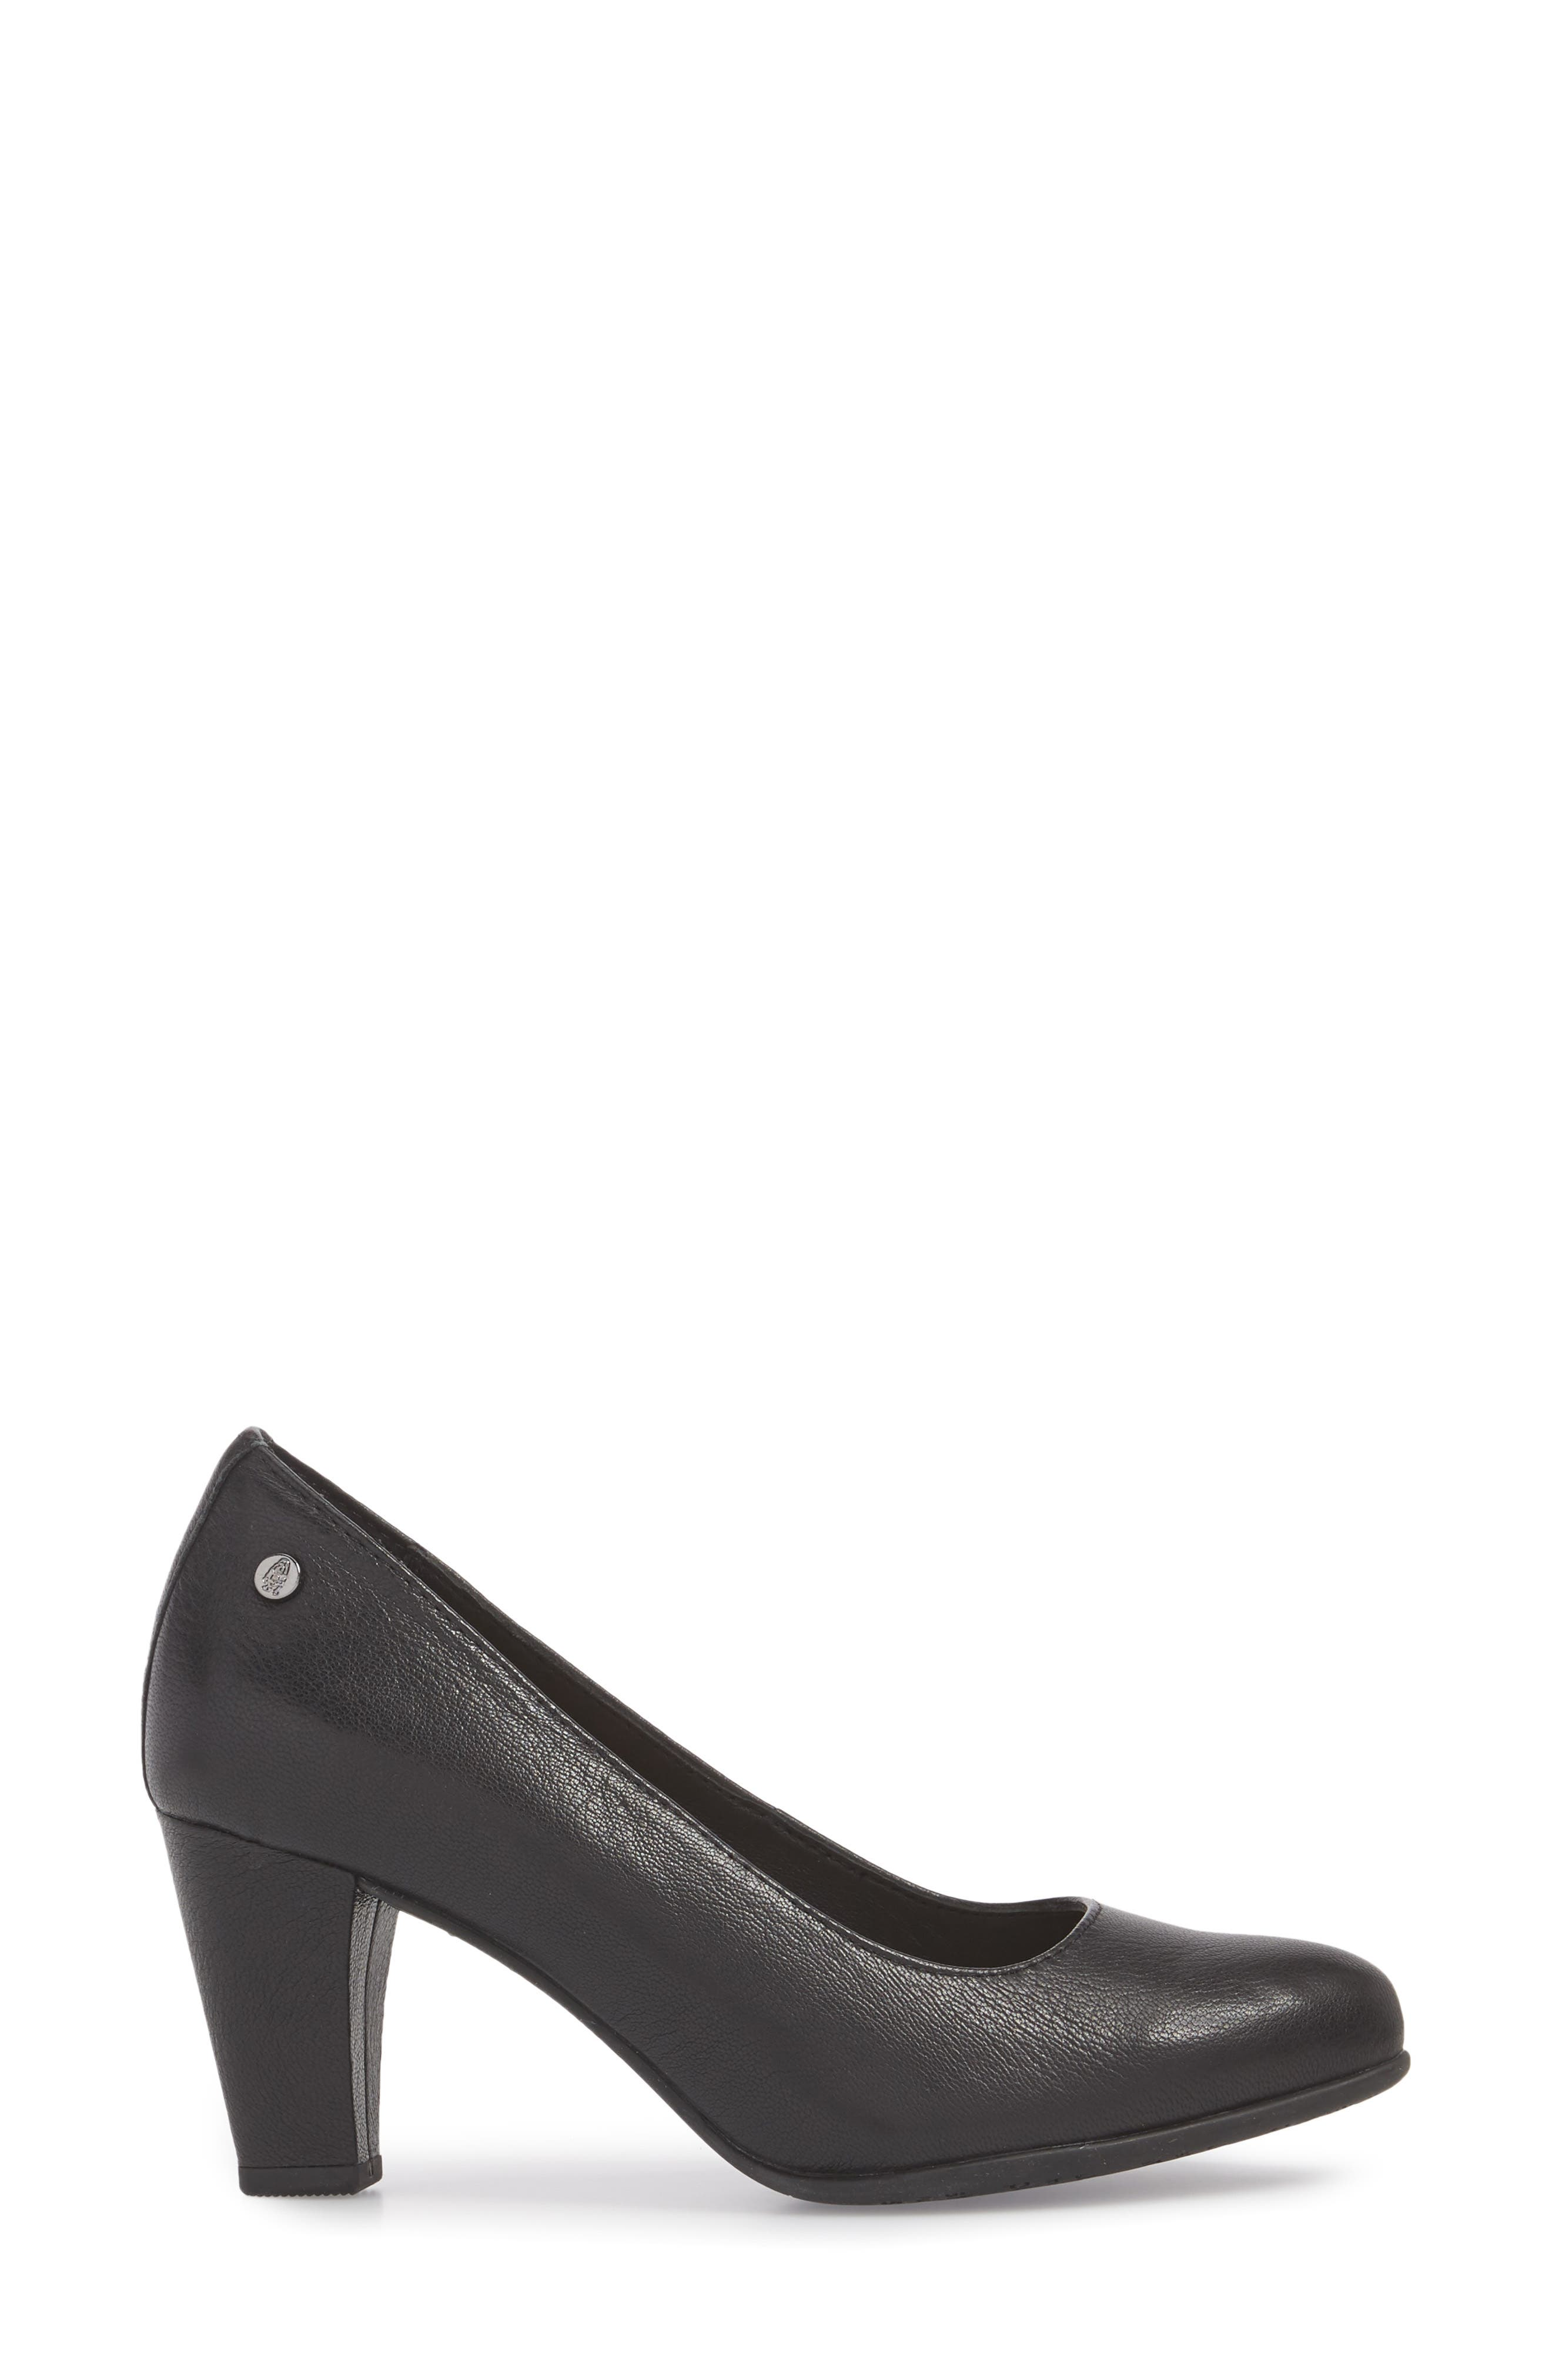 Minam Meaghan Pump,                             Alternate thumbnail 3, color,                             Black Leather